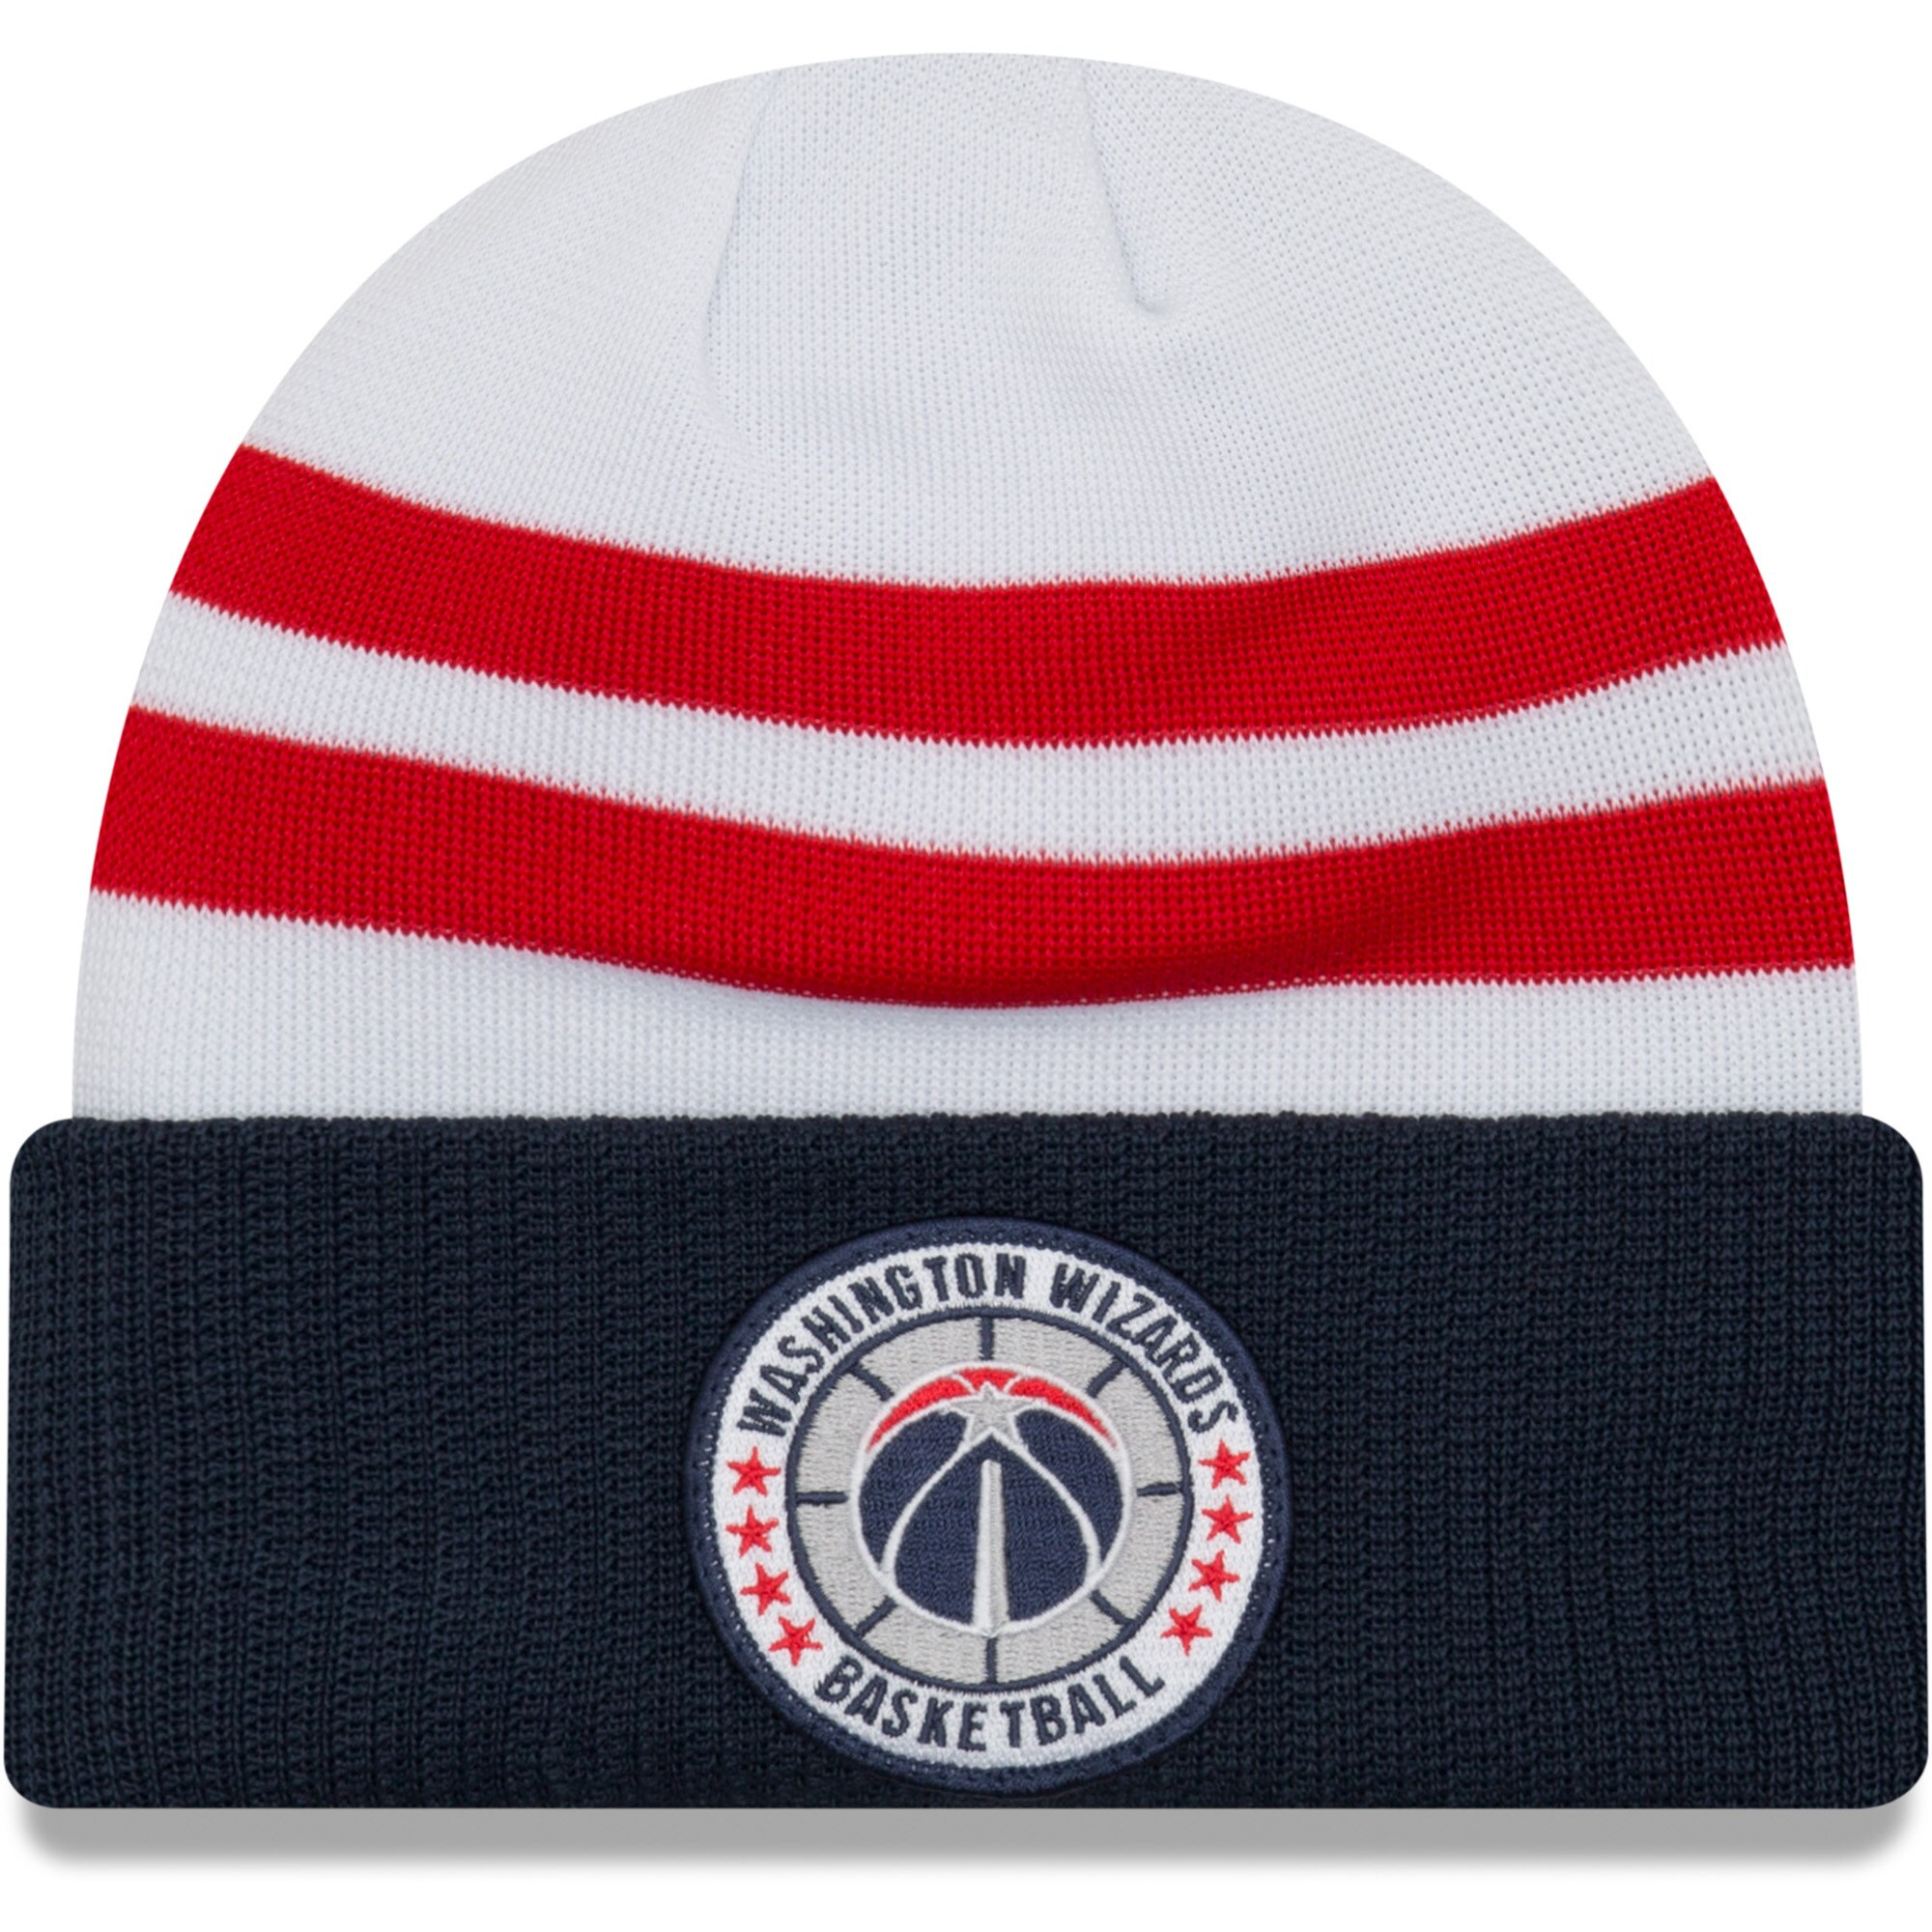 Washington Wizards New Era 2018 Tip Off Series Cuffed Knit Hat - White